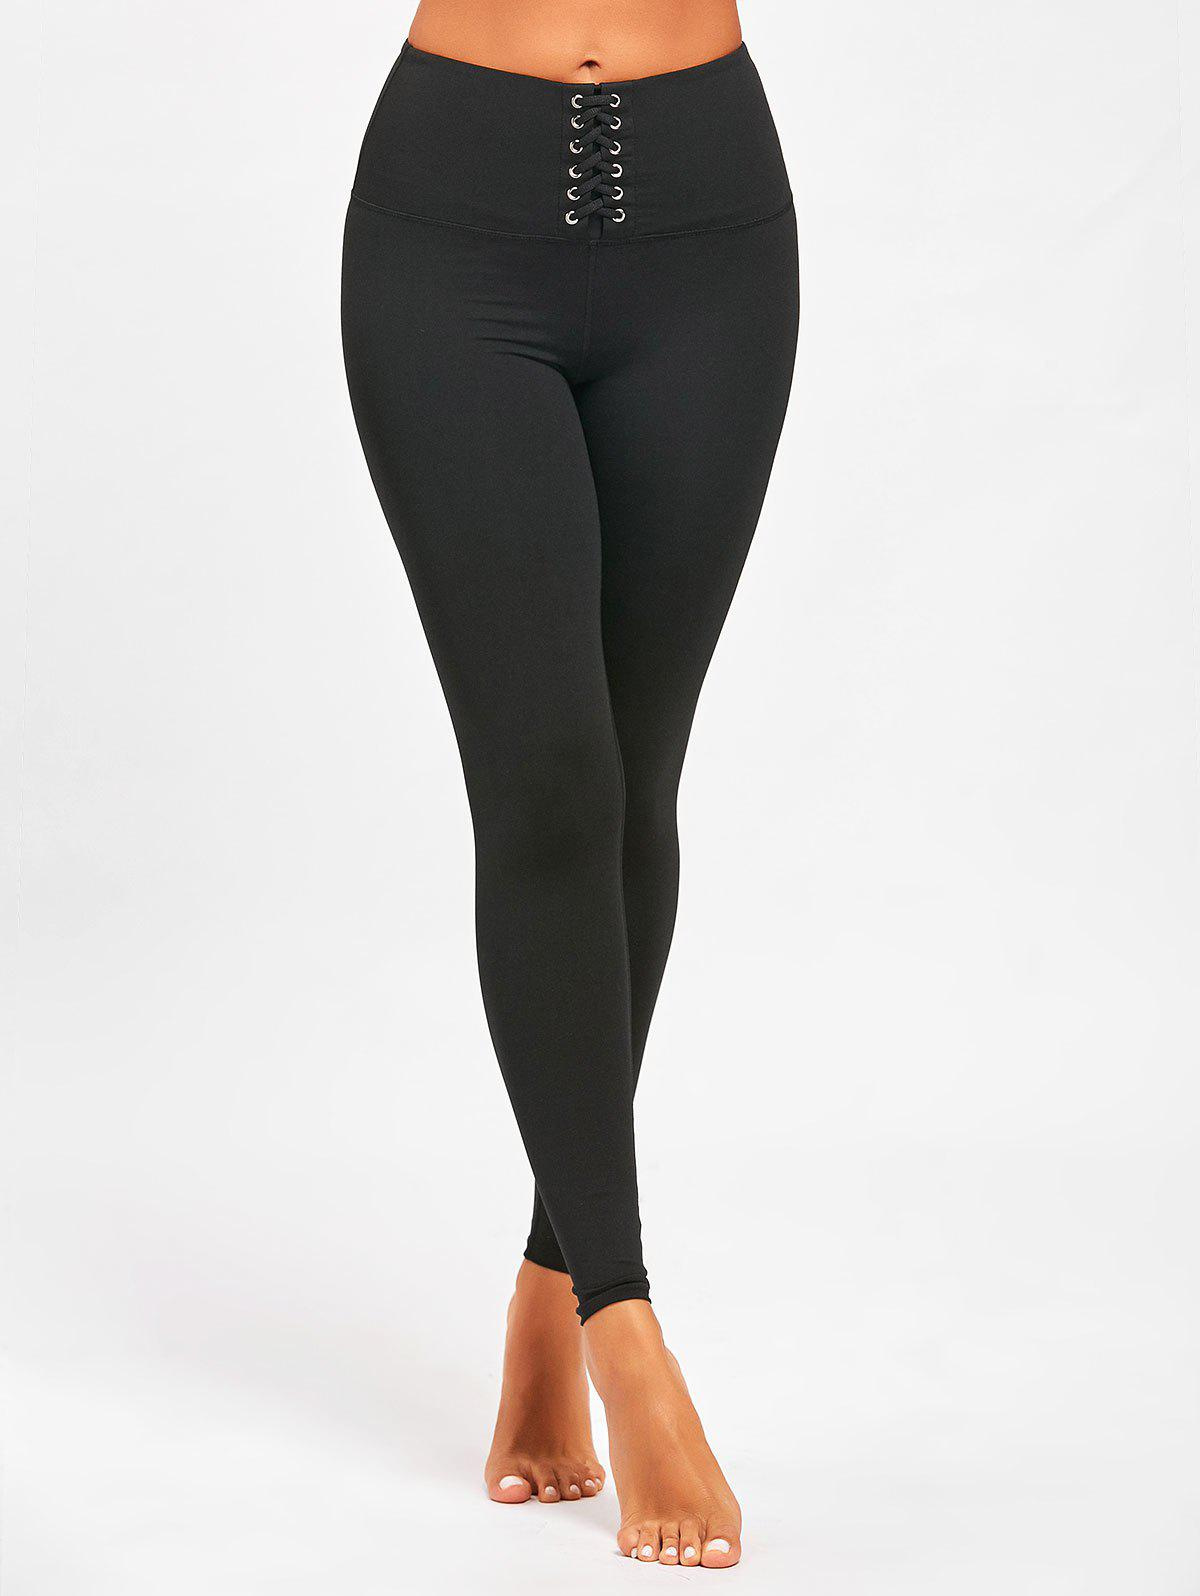 Affordable Sports  High Rise Criss Cross Leggings